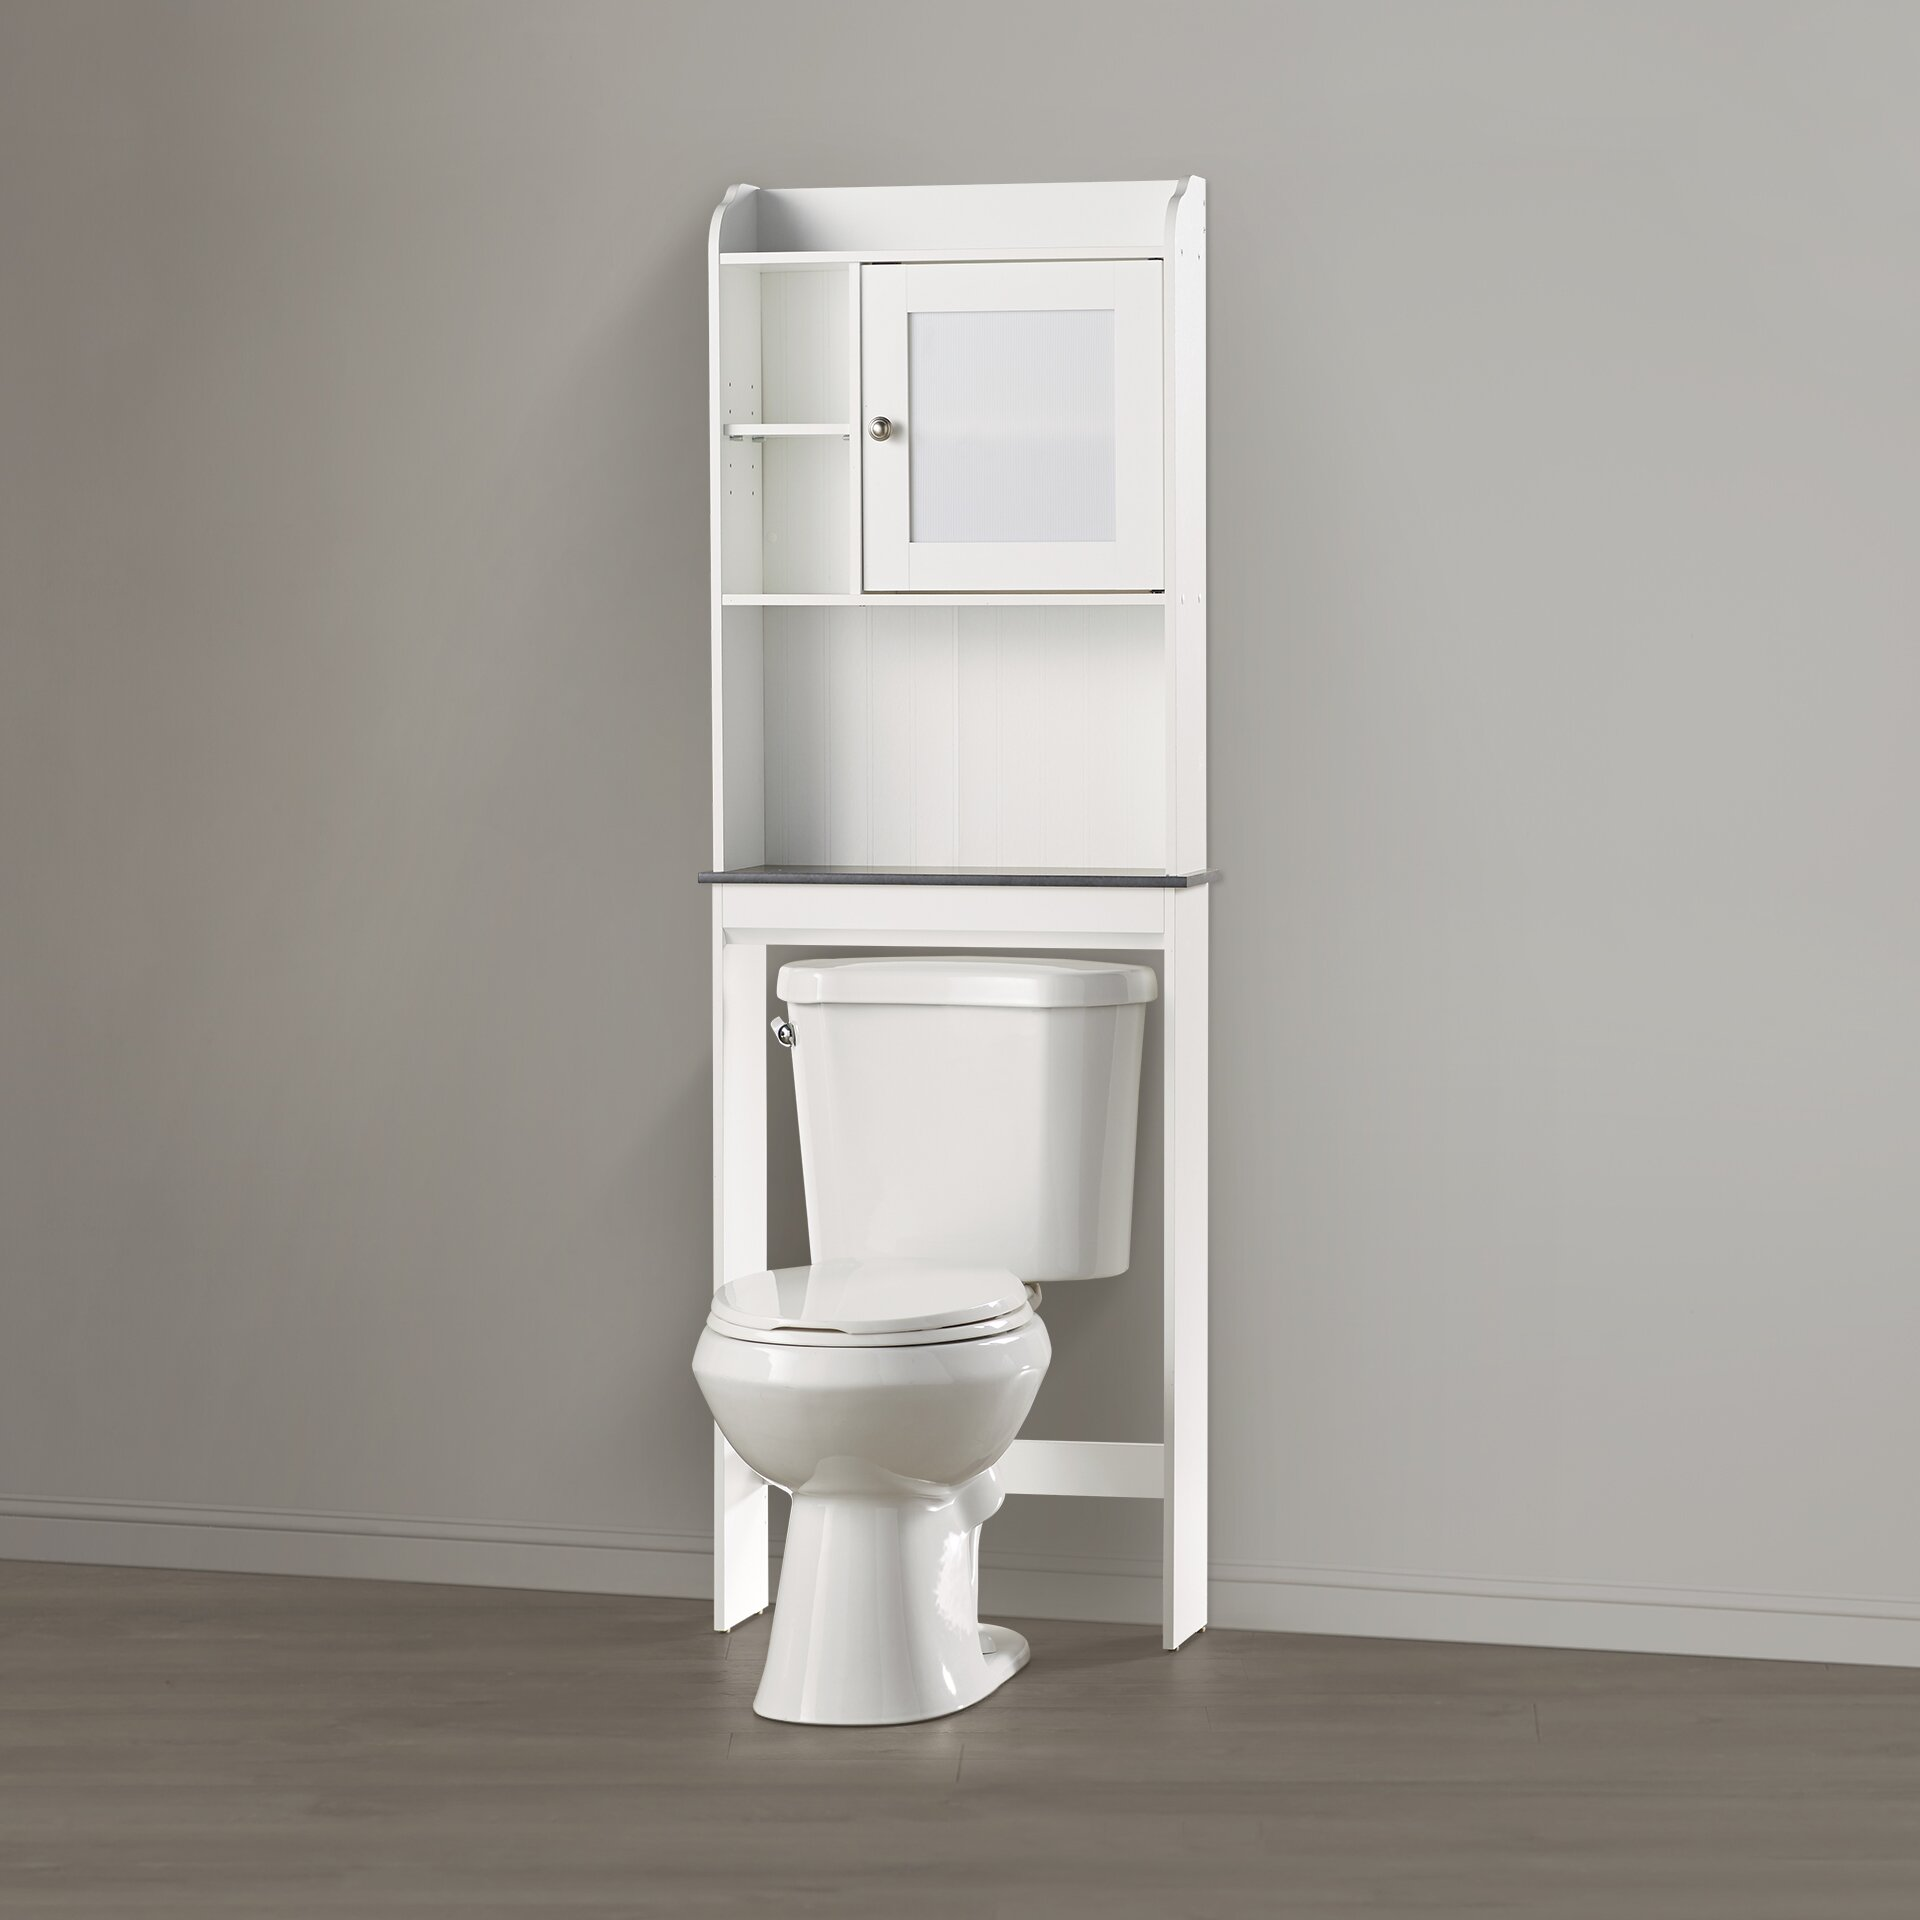 Bathroom Over The Toilet Cabinet dact